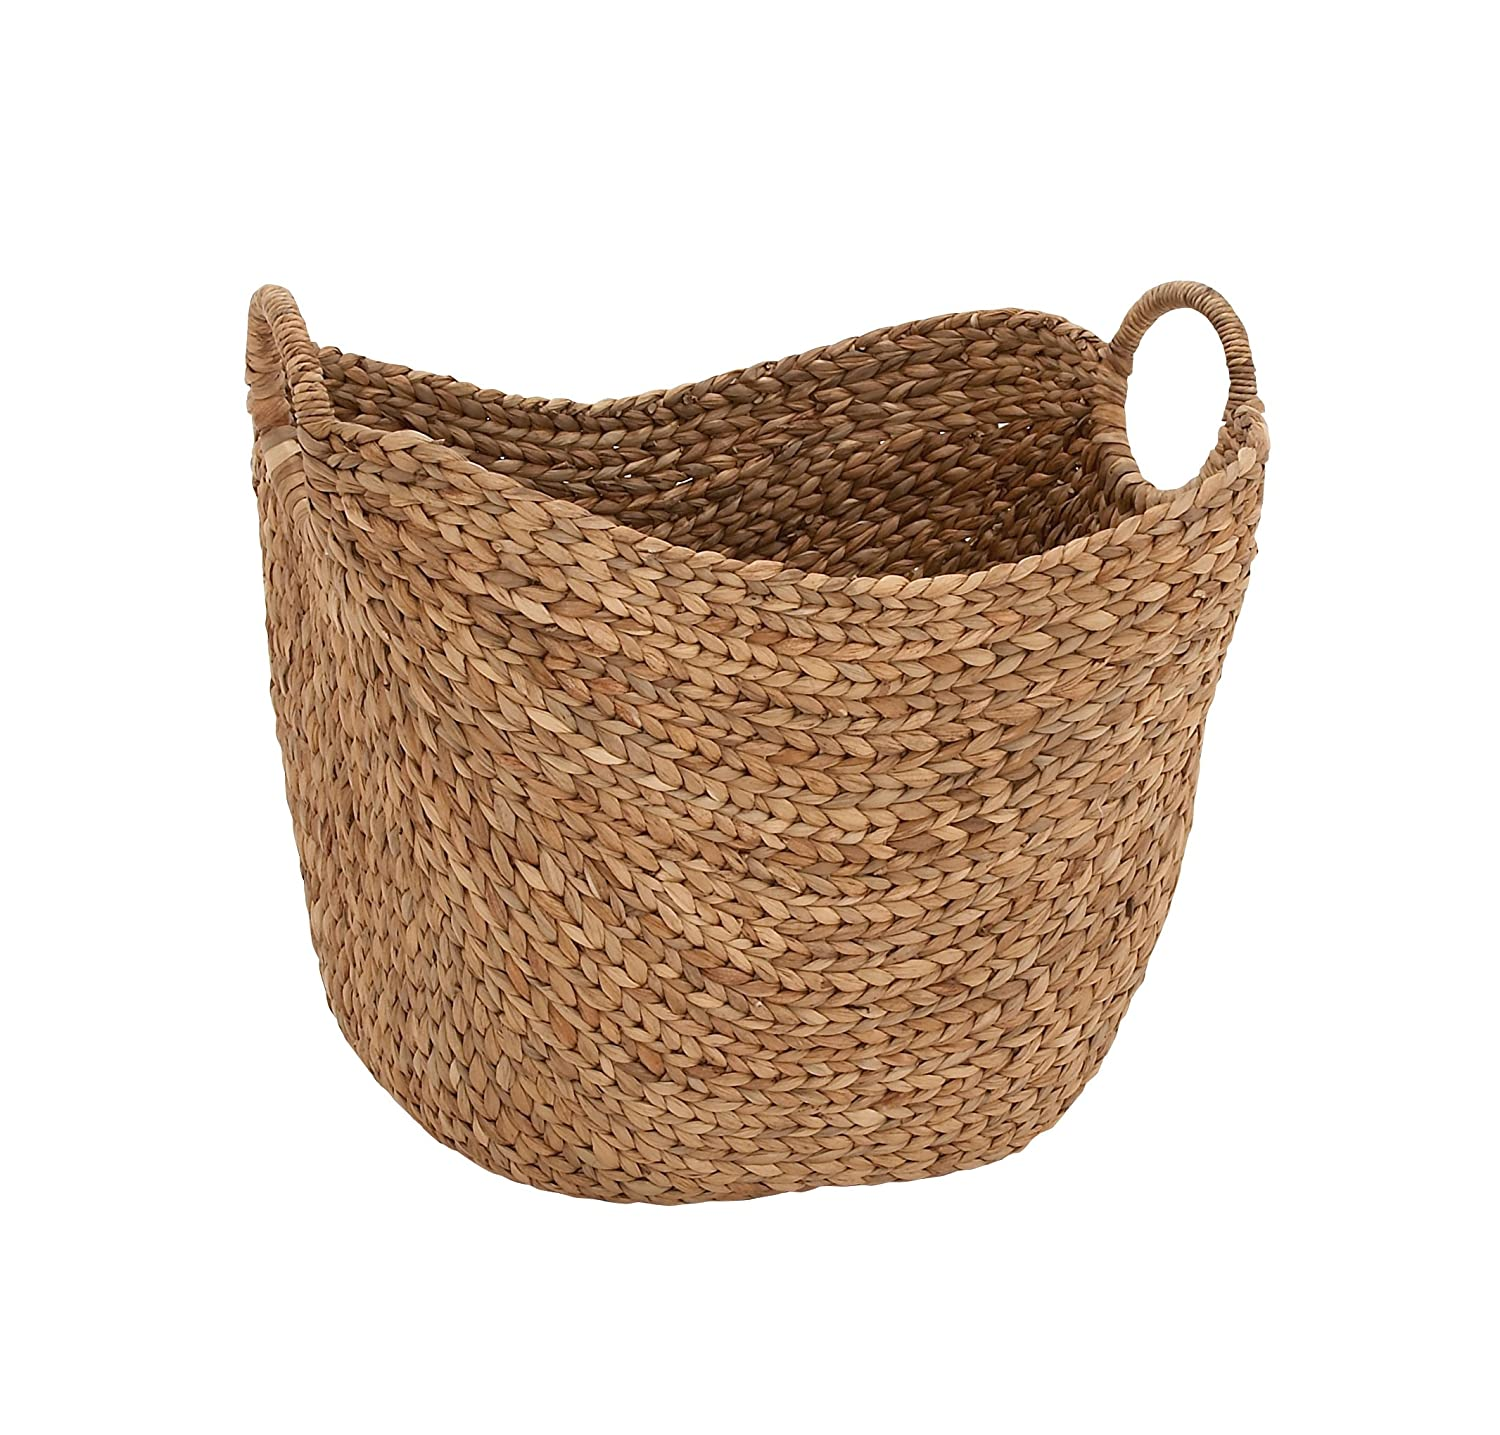 "Deco 79 Large Seagrass Woven Wicker Basket with Arched Handles, Rustic Natural Brown Finish, as Coastal Decorative Accent or Storage, 21"" W x 17"" L x 17"" H,"